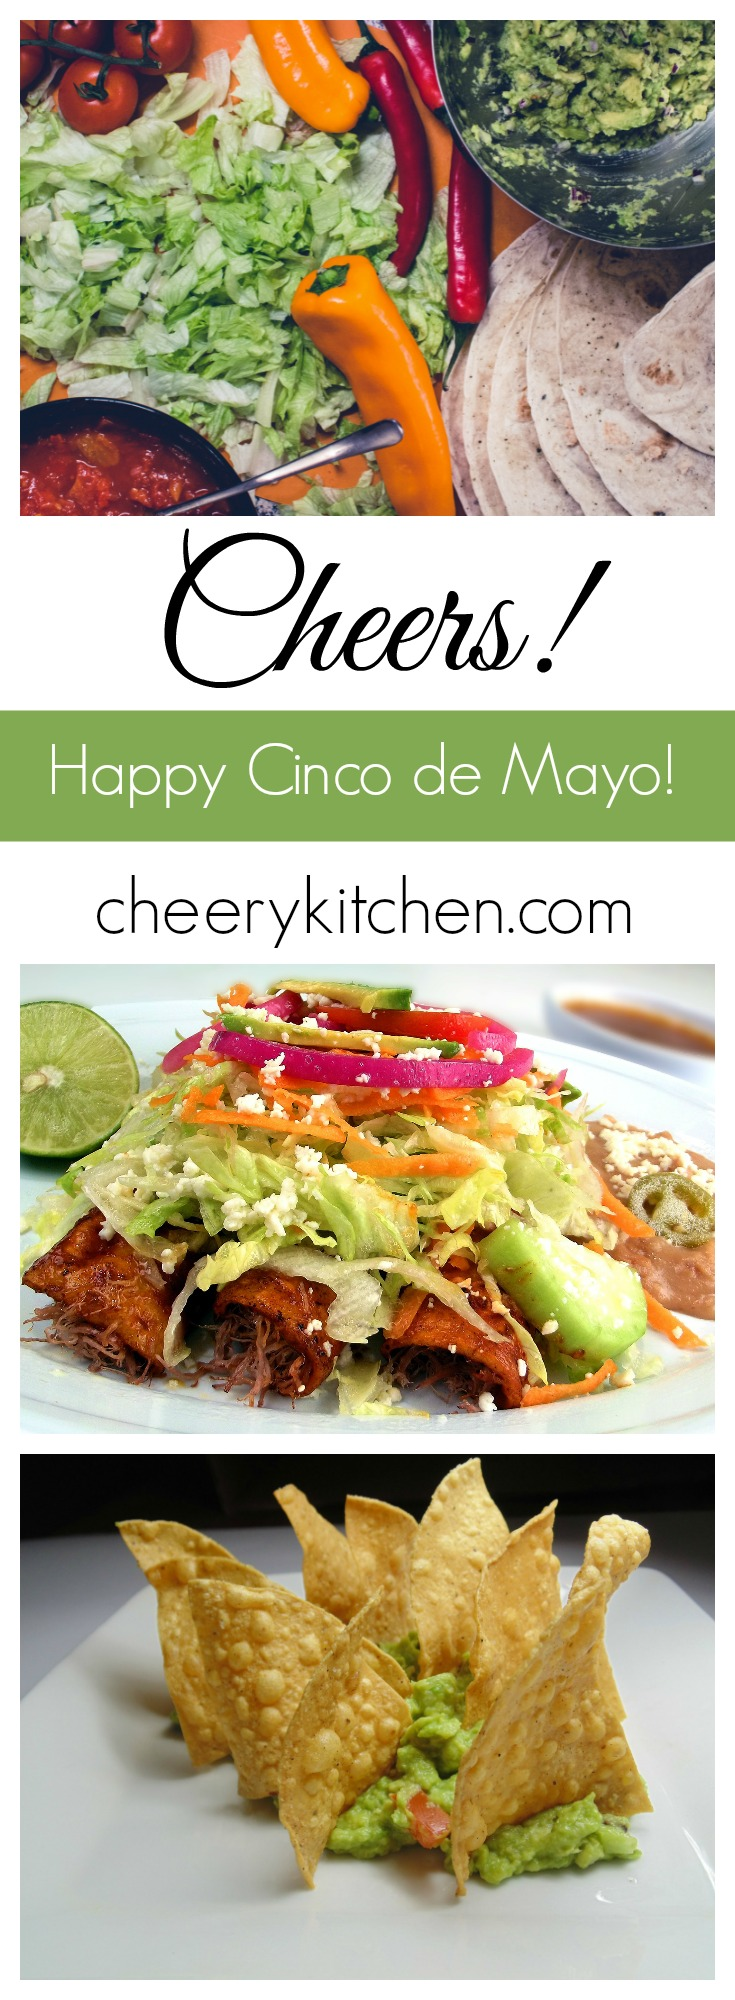 Cinco de Mayo is not just the average holiday! Spend it with us as we celebrate with Mexican feasts from all around the web!